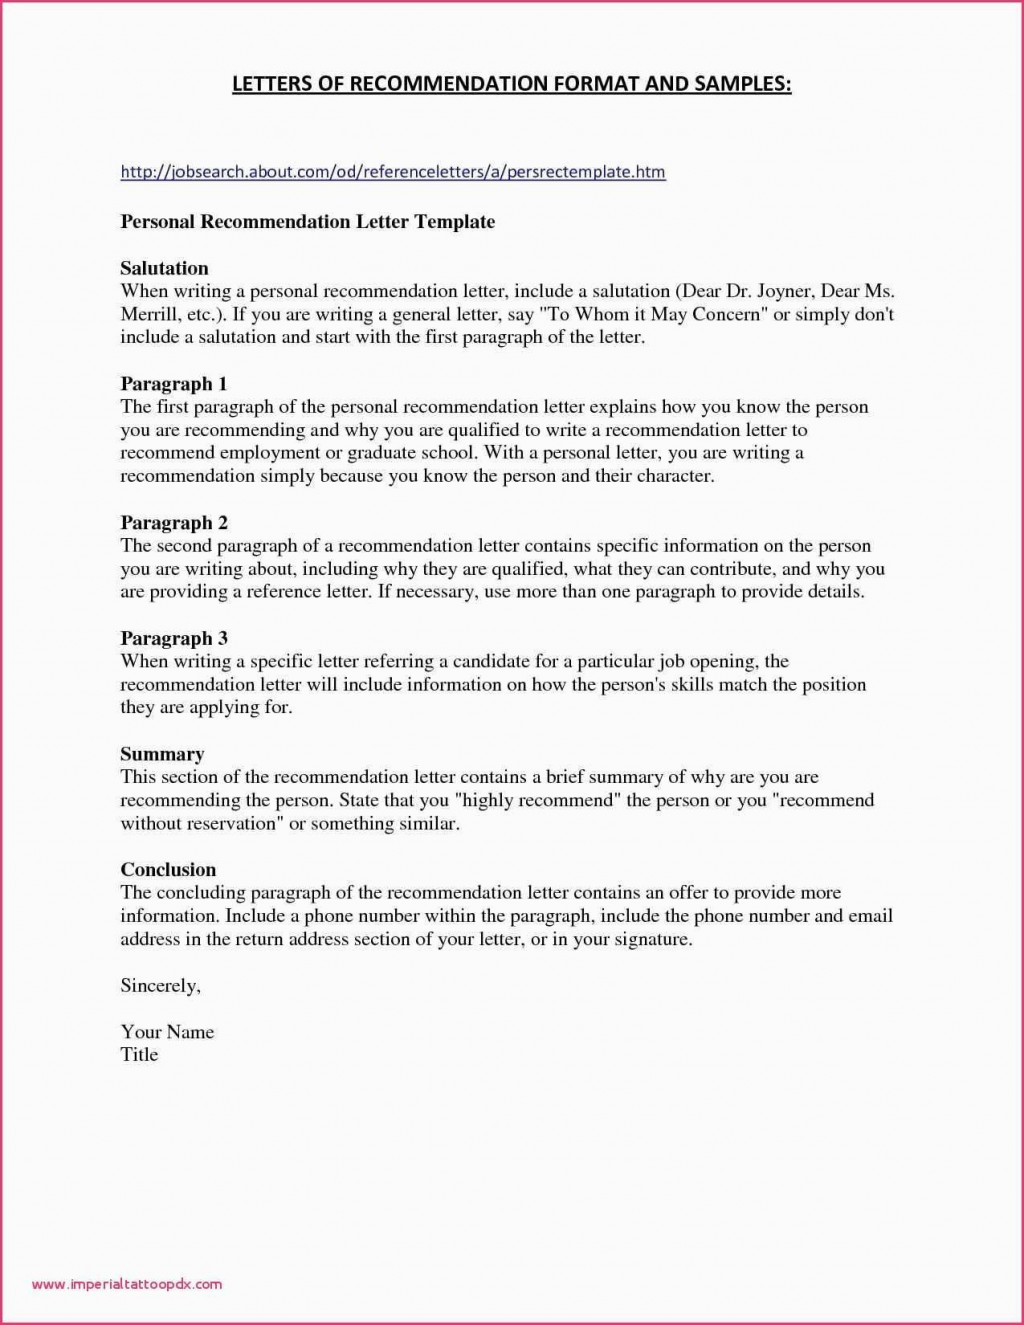 029 Career Research Paper Example How To Start Examples Awesome Business Correspondence Letter Sample Fresh Cover For Unusual Dream Apa Pdf Large